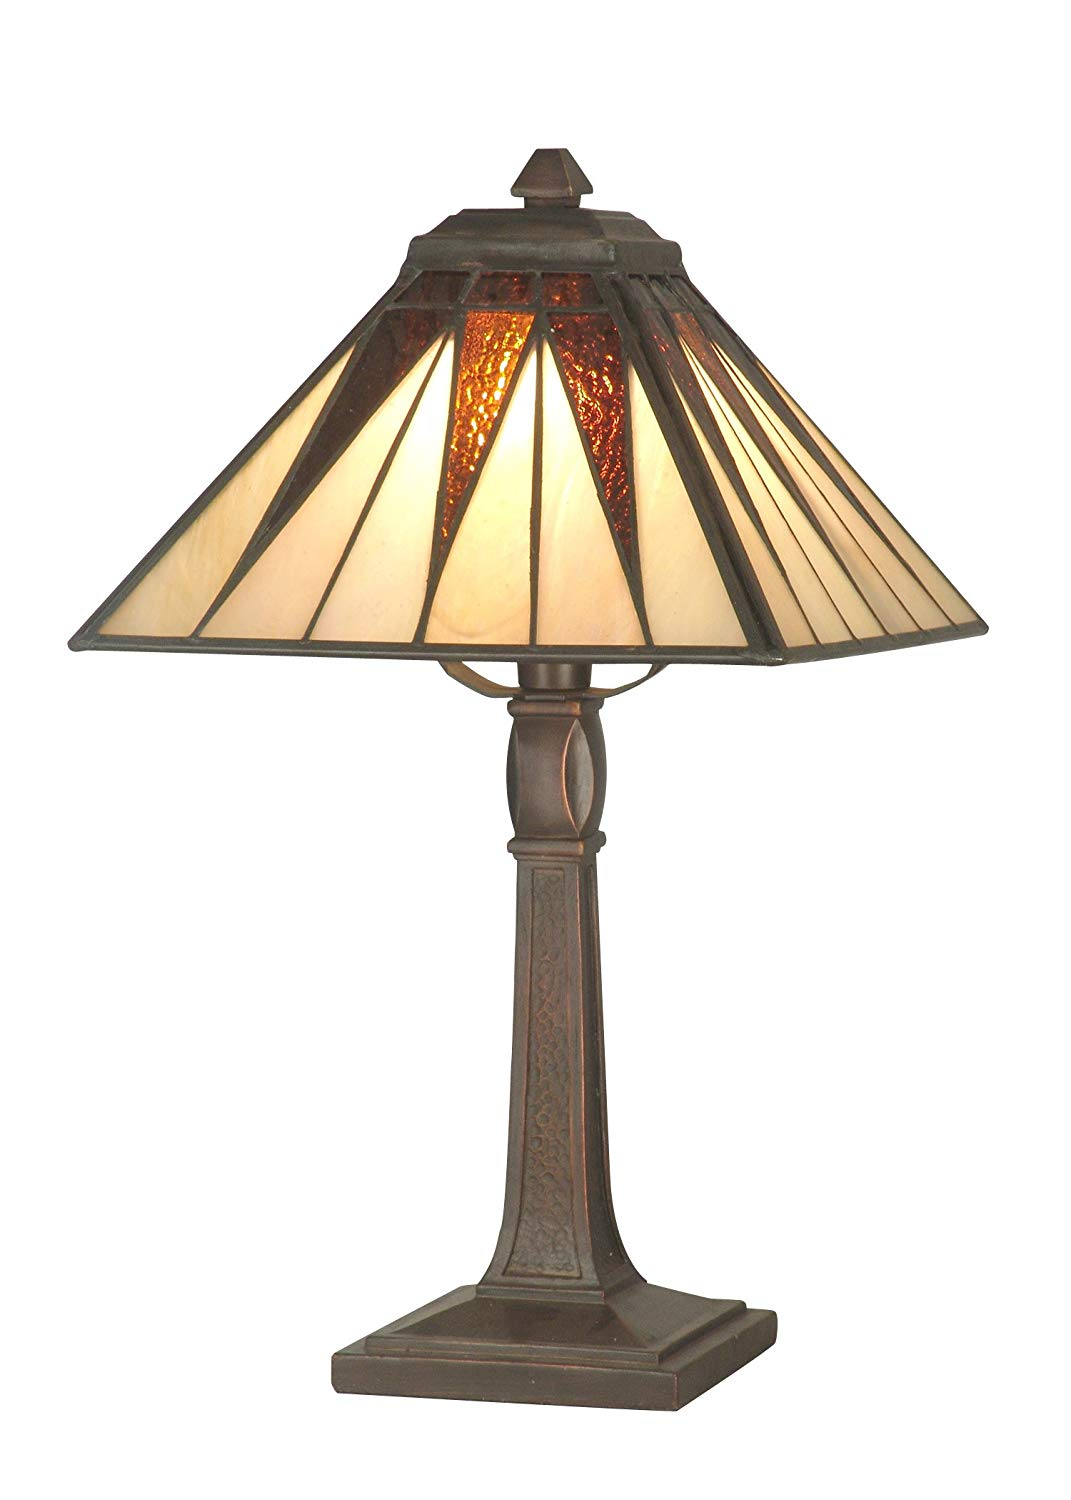 dale tiffany cooper accent lamp antique bronze and art miniature table lamps glass shade unfinished round end eos vita metal tables wicker patio west elm mirrored side mainstays